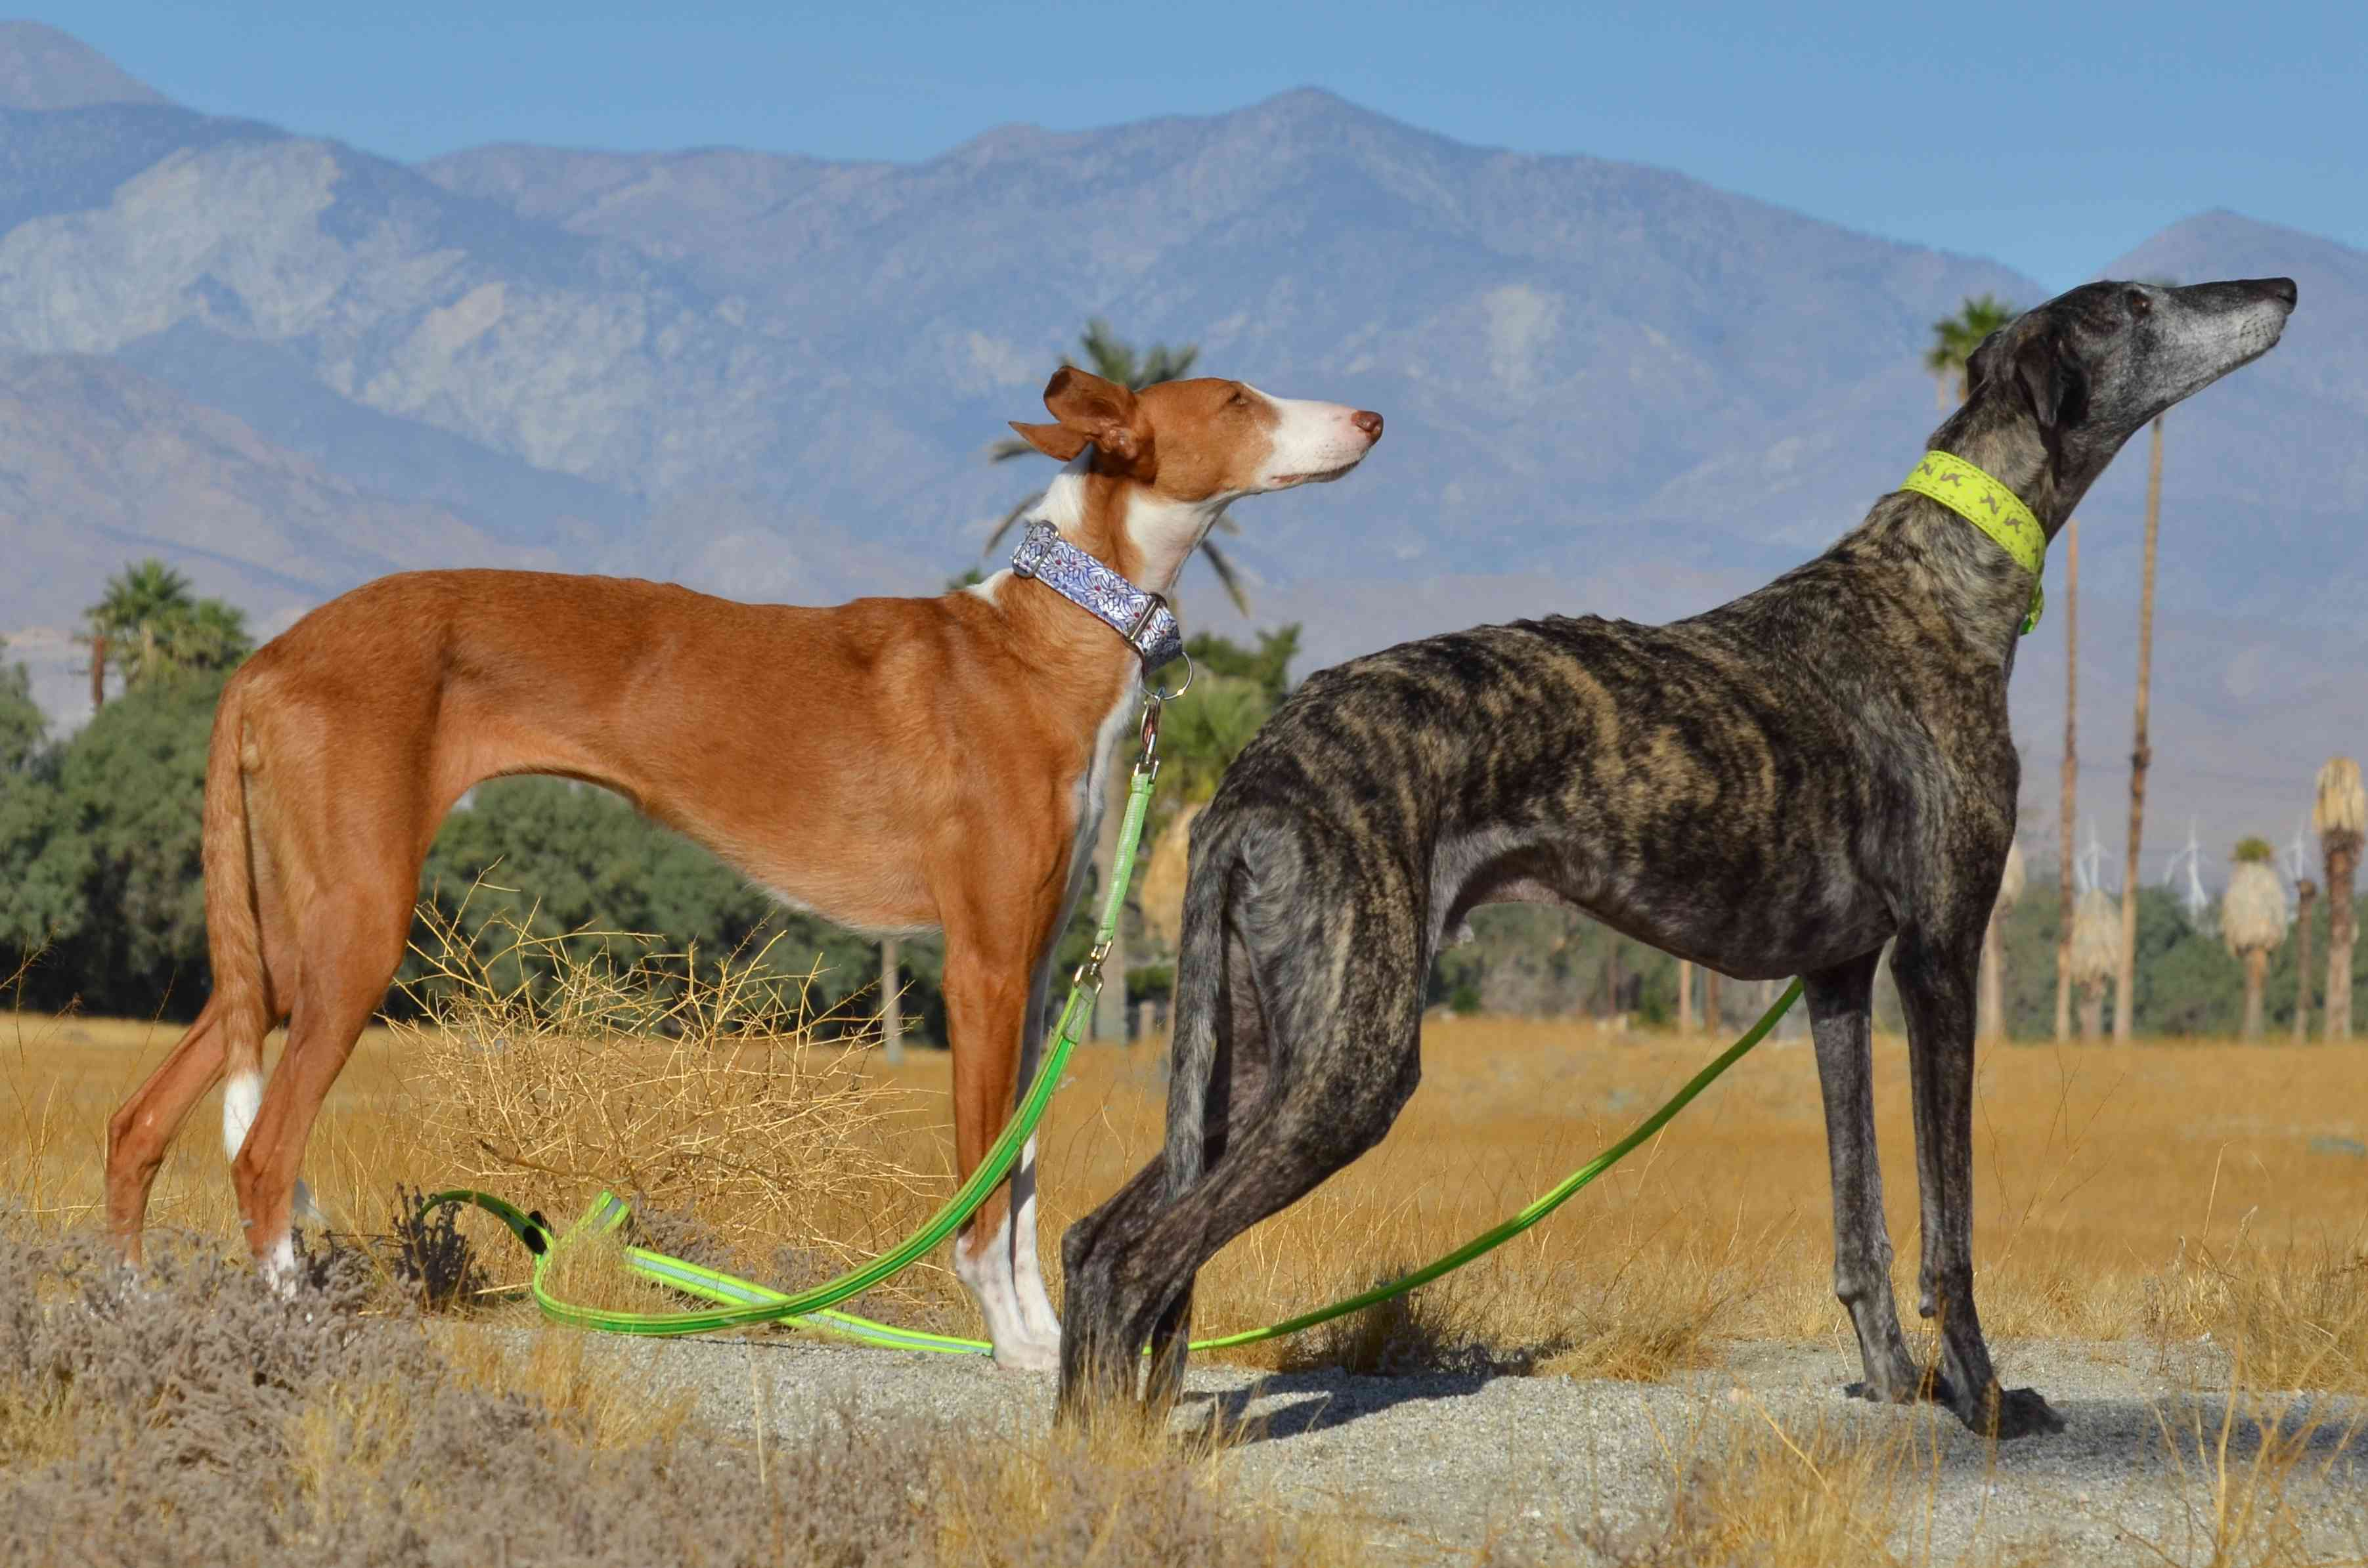 Two galgo with their noses tilted at the sky.